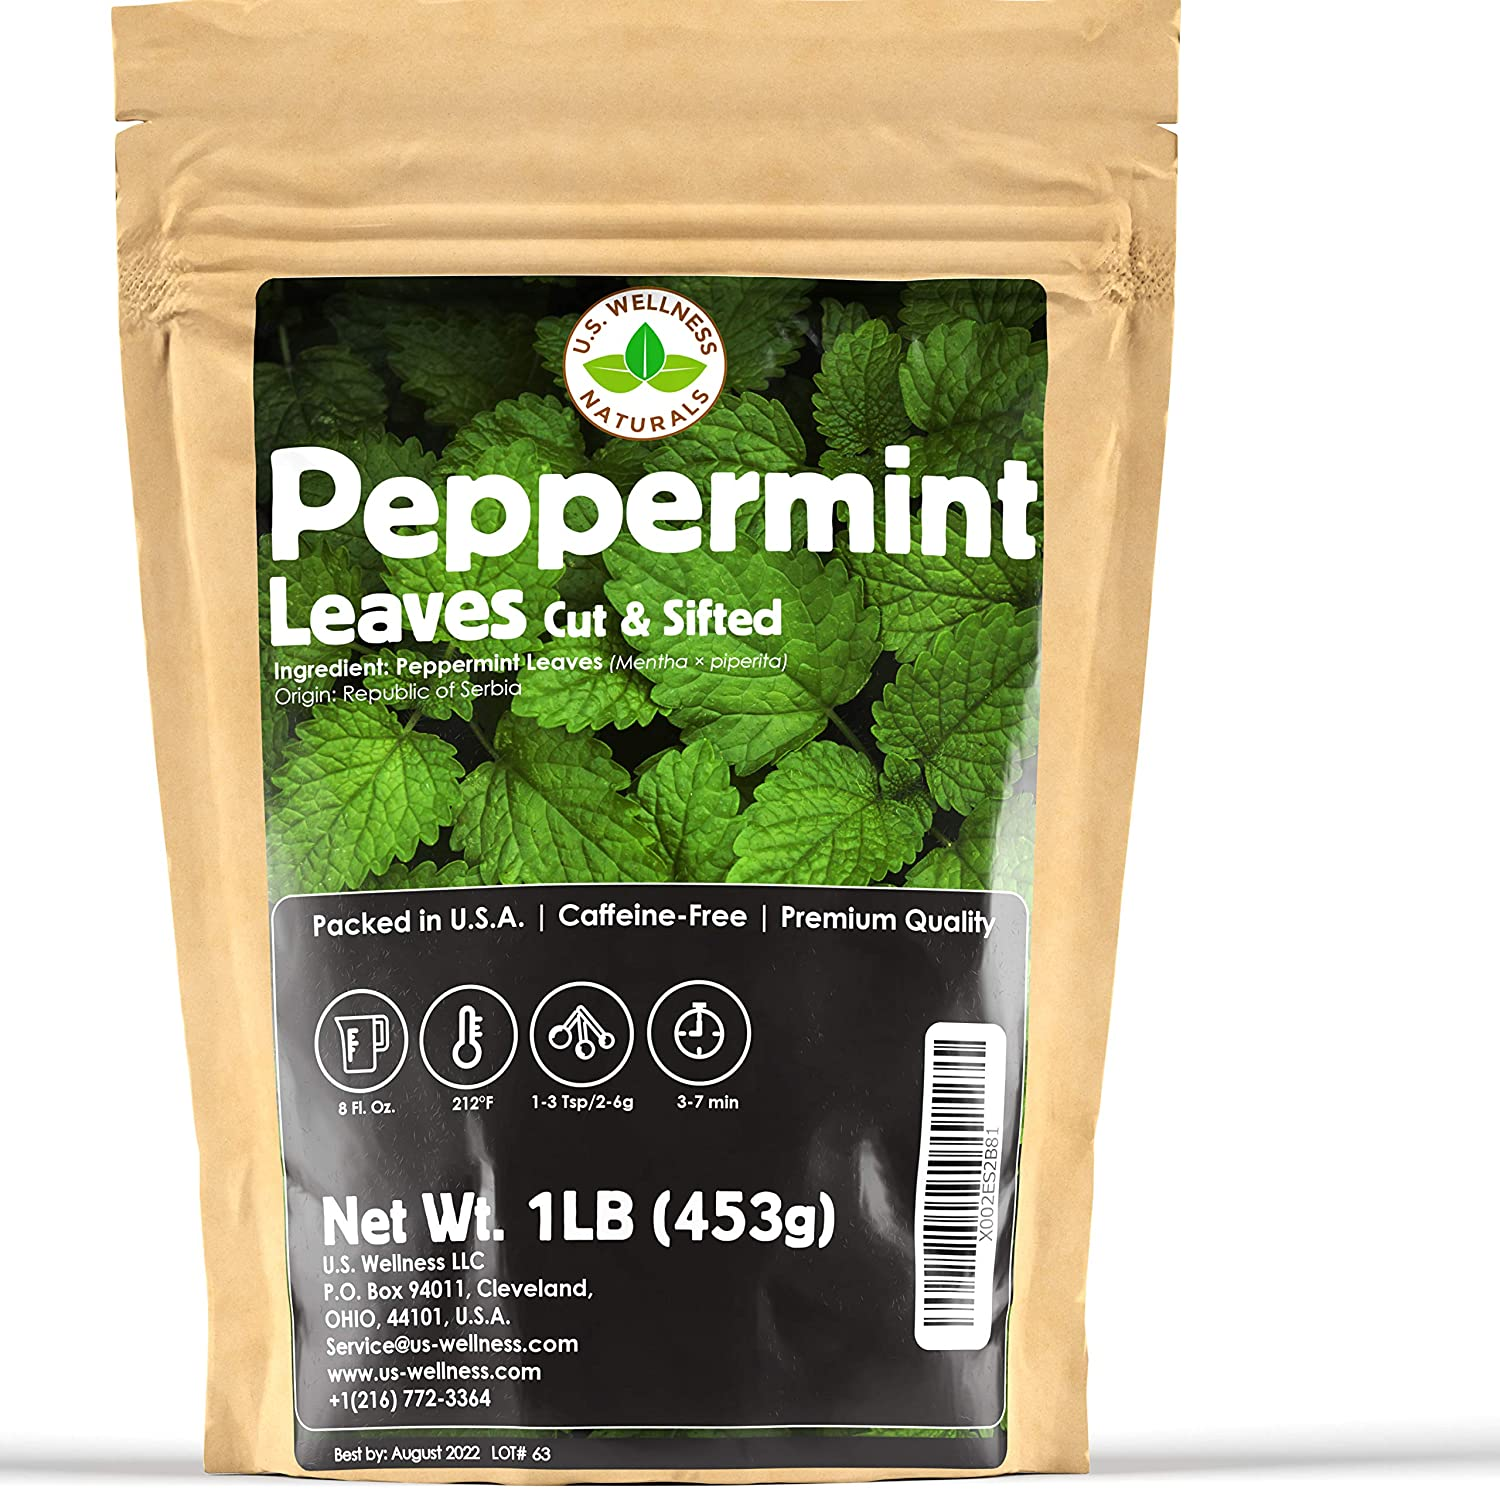 Peppermint Tea Limited price 1LB 16Oz Cut Non-i STRONG Sifted Genuine FRESH